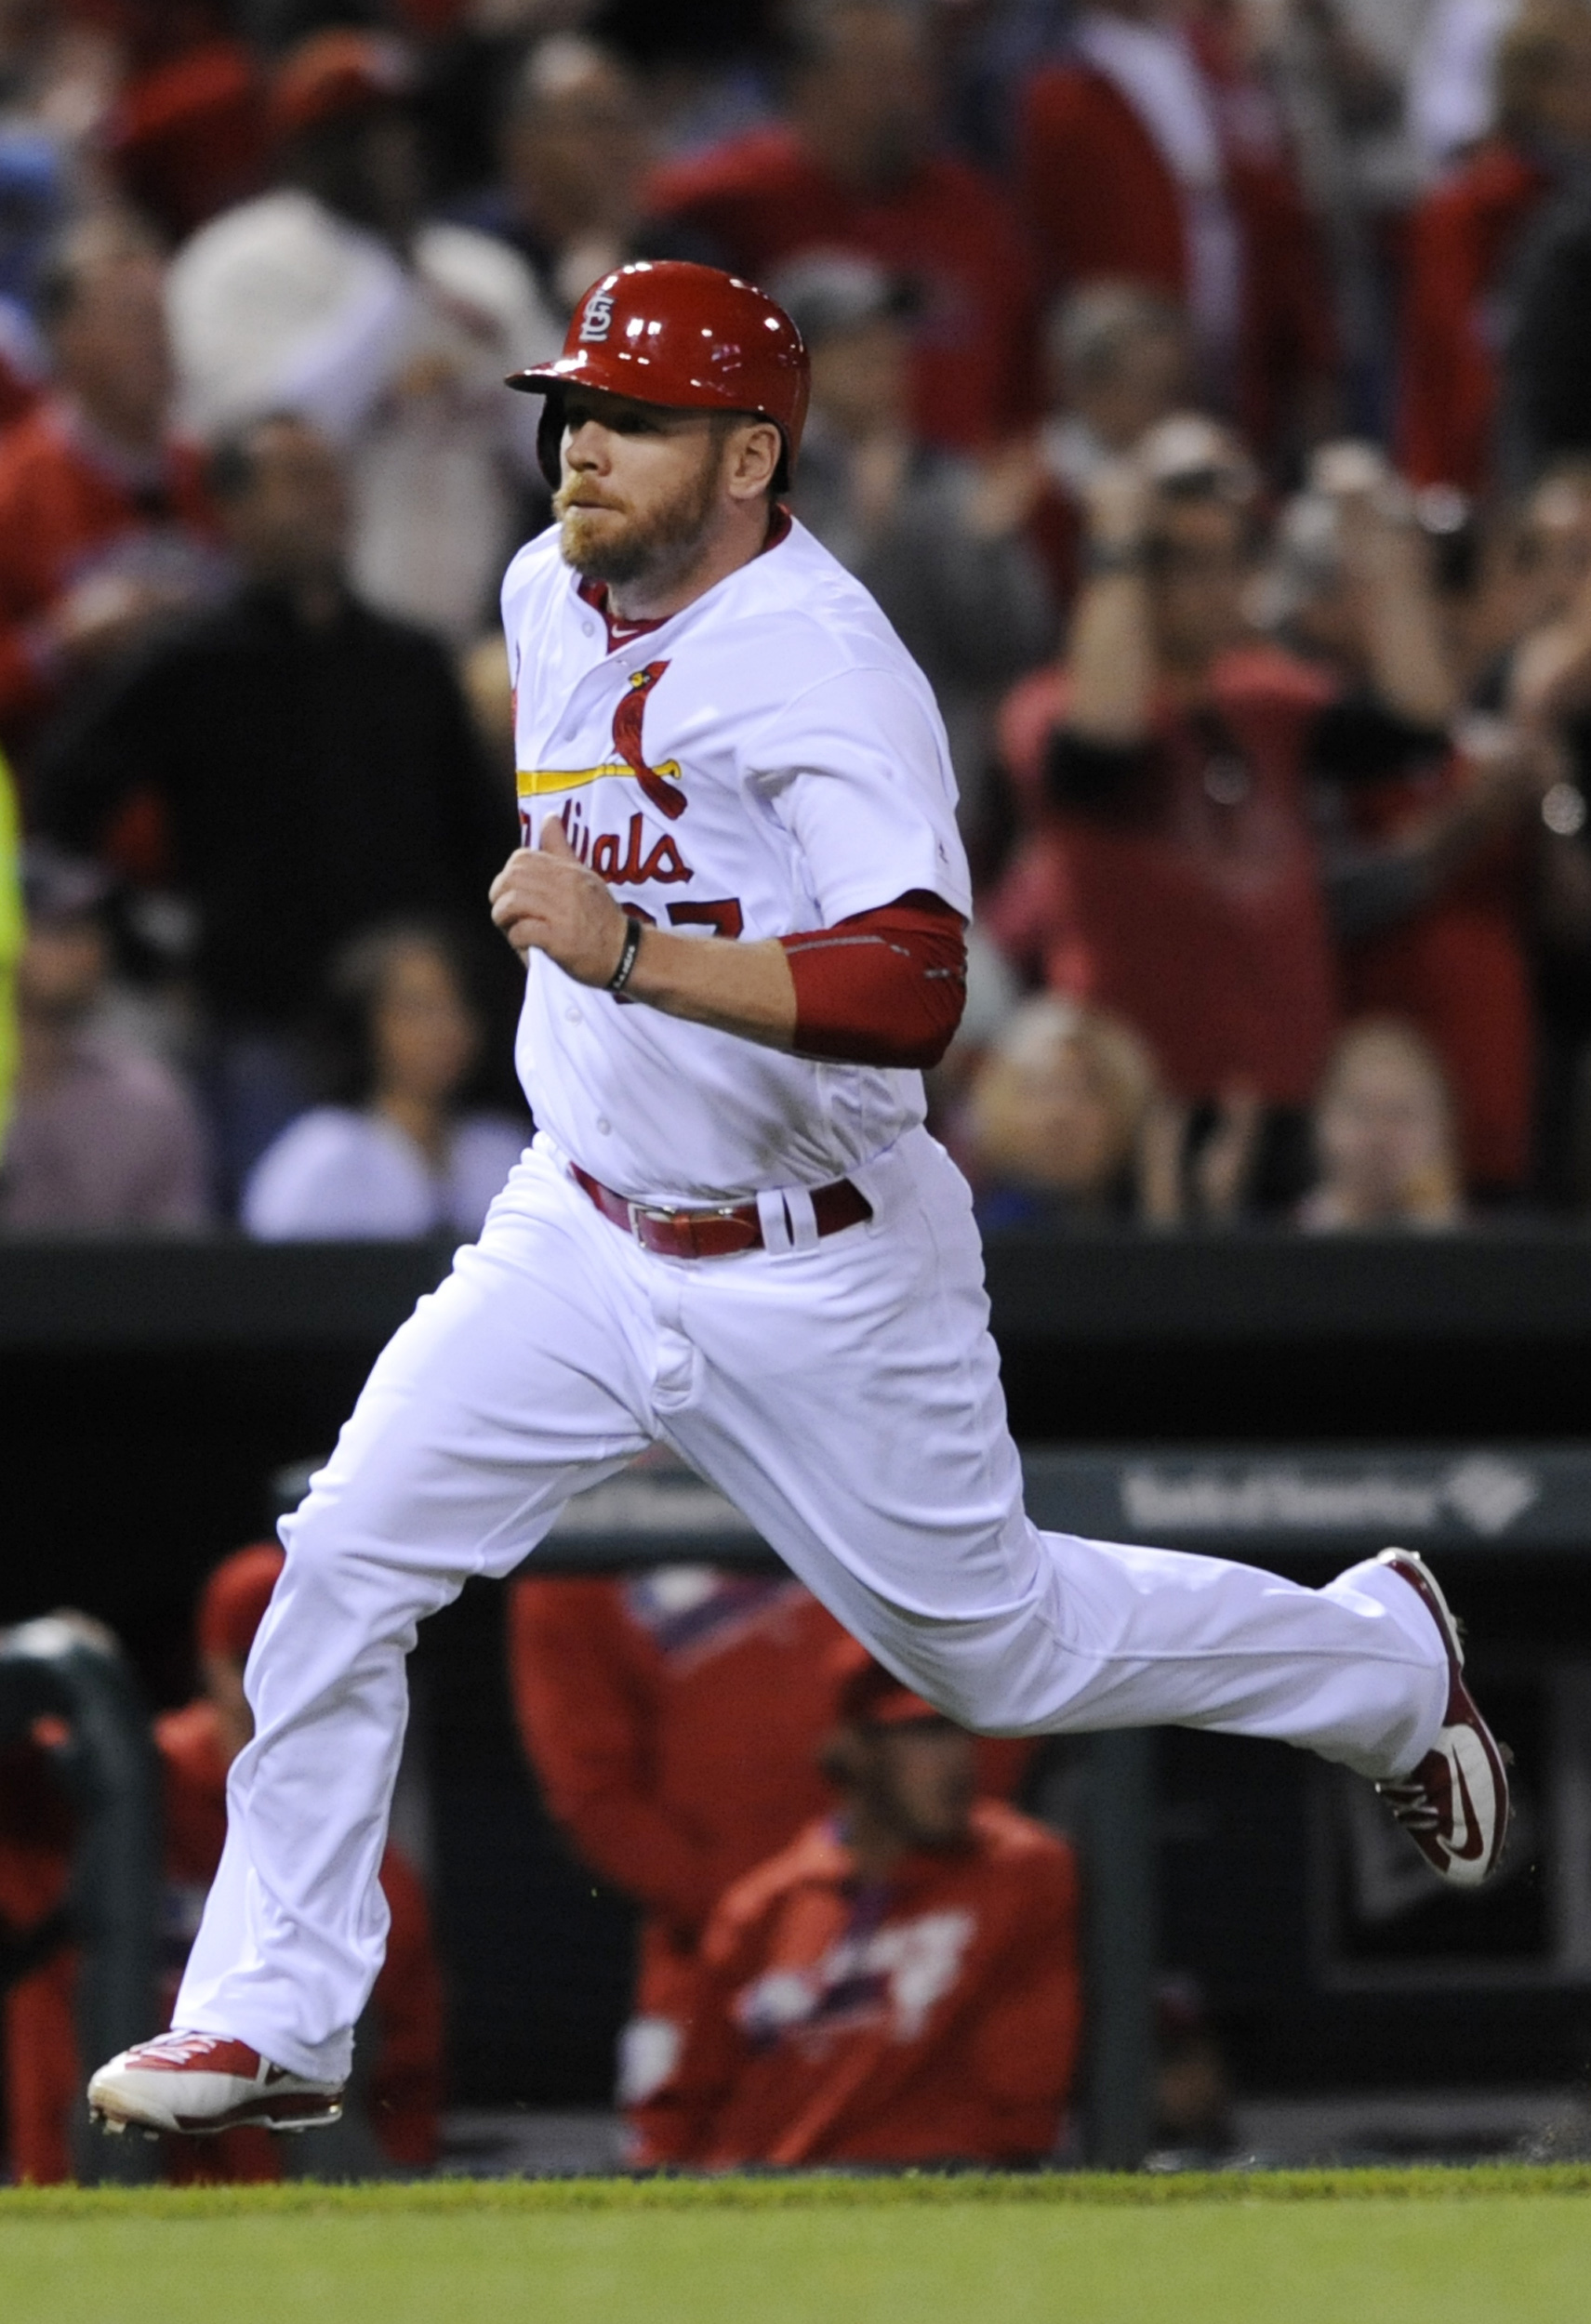 St. Louis Cardinals' Brandon Moss (37) runs home on an RBI single by Stephen Piscotty against the Philadelphia Phillies in the fifth inning of a baseball game, Wednesday, May 4, 2016, at Busch Stadium in St. Louis. (AP Photo/Bill Boyce)